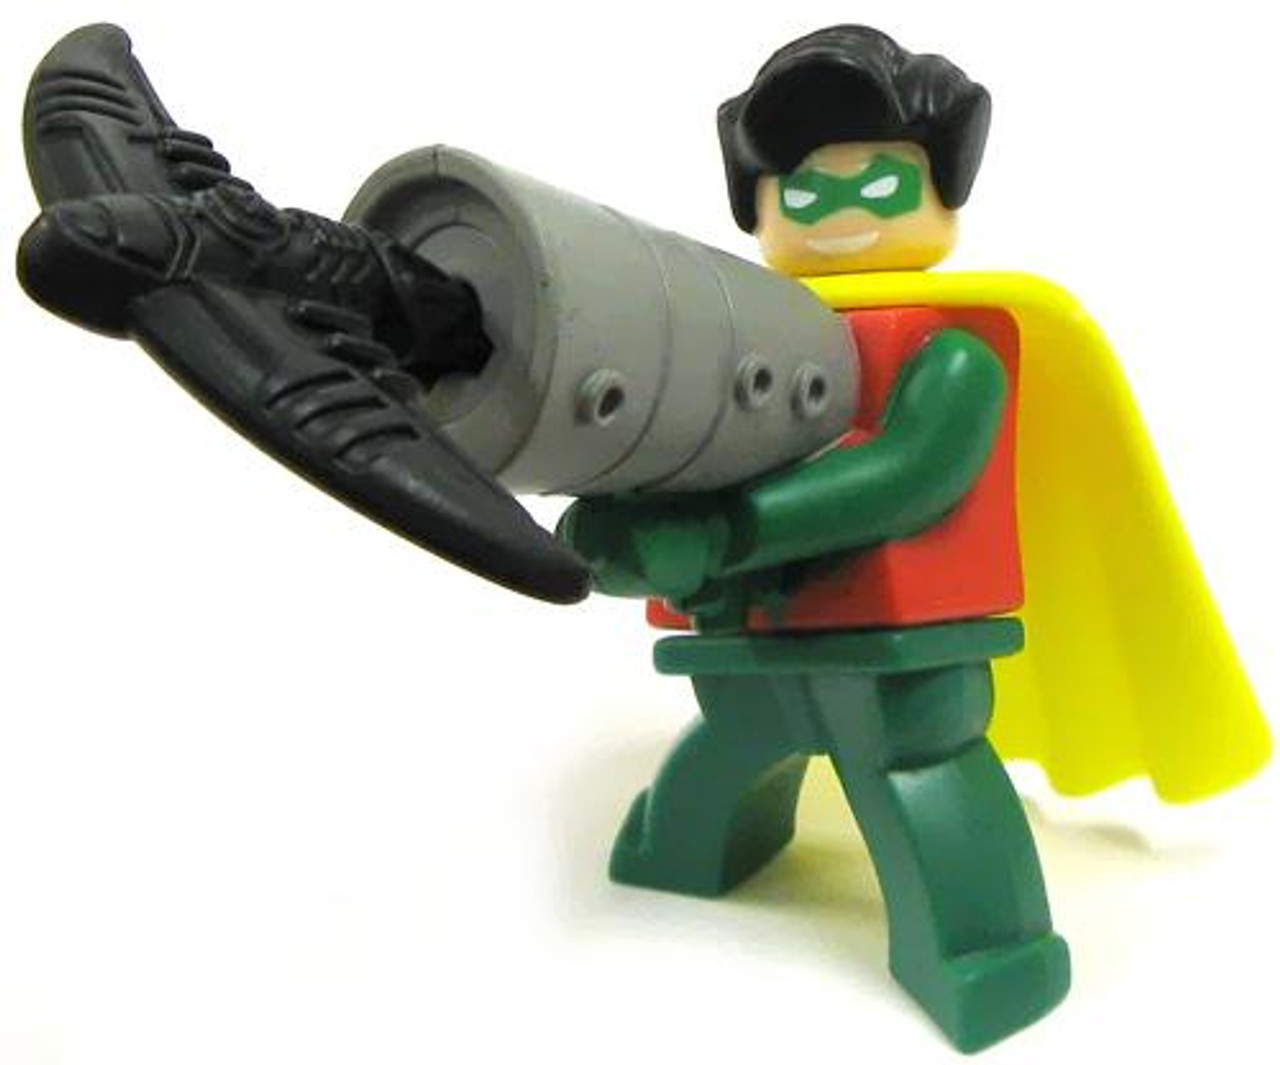 LEGO Batman Robin with Grappling Hook Happy Meal Toy #7